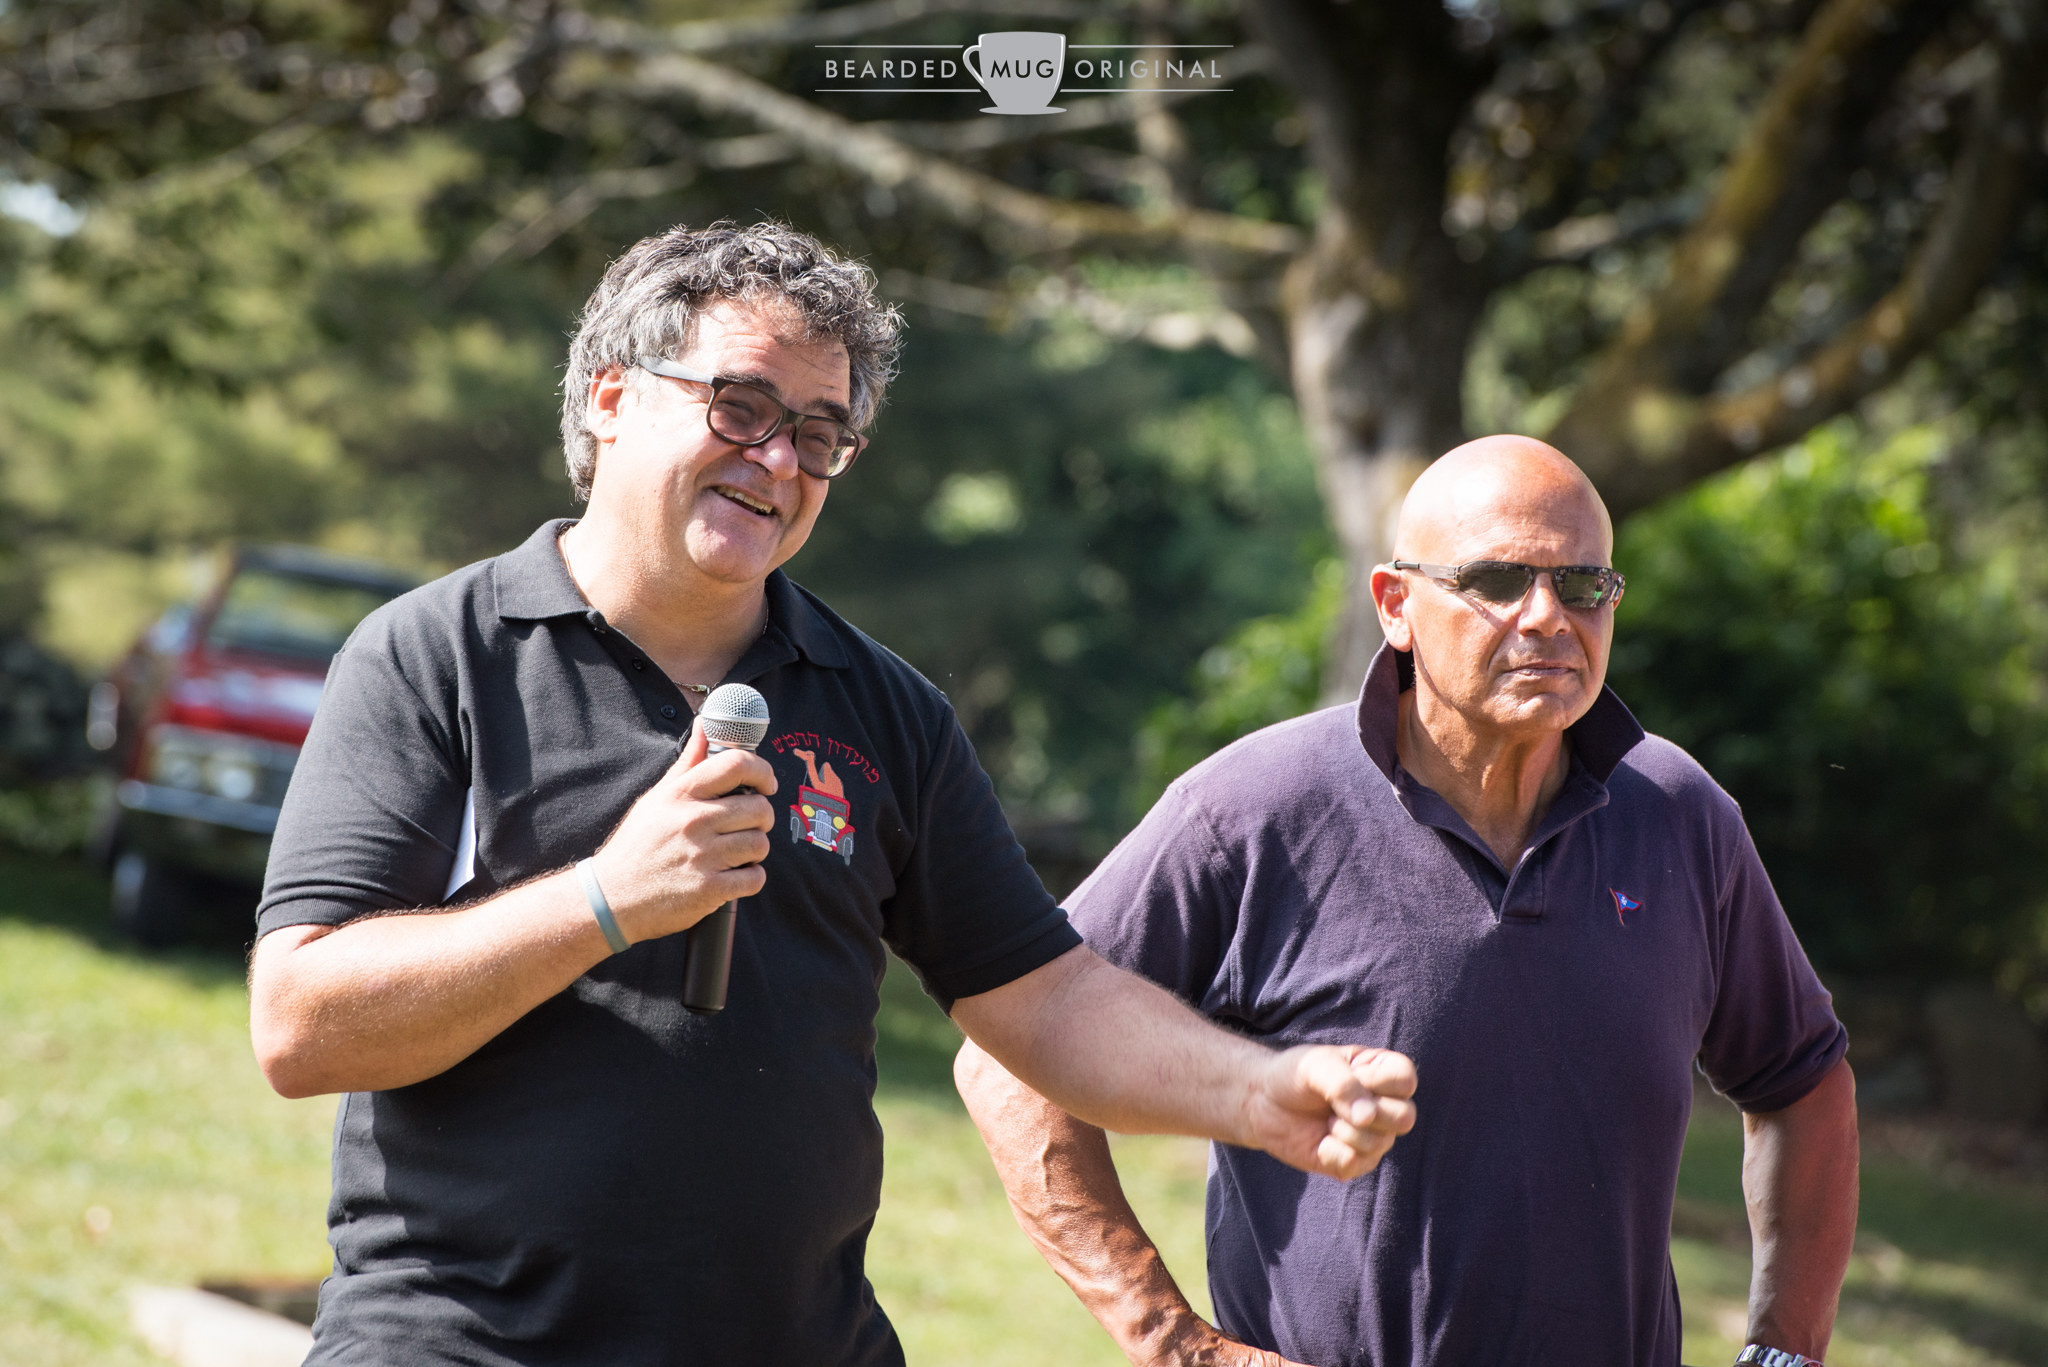 Santo Spadaro, son of Domenico and possessor of one of the friendliest faces, addresses the crowd of over 350 before the cars set off on their journey. Next to him is Mike Bruno, who has played an invaluable role in the Memorial Drive over the years.